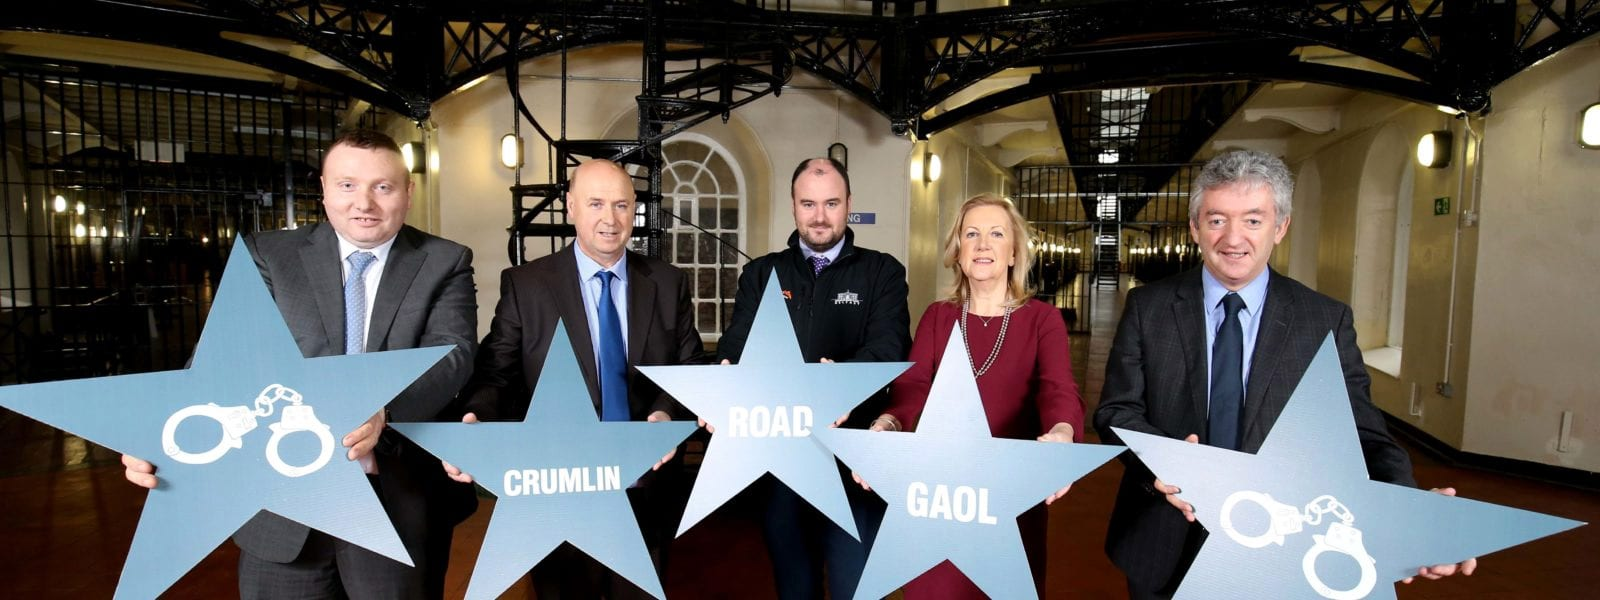 Crumlin Road Gaol Locks In 5-Star Rating